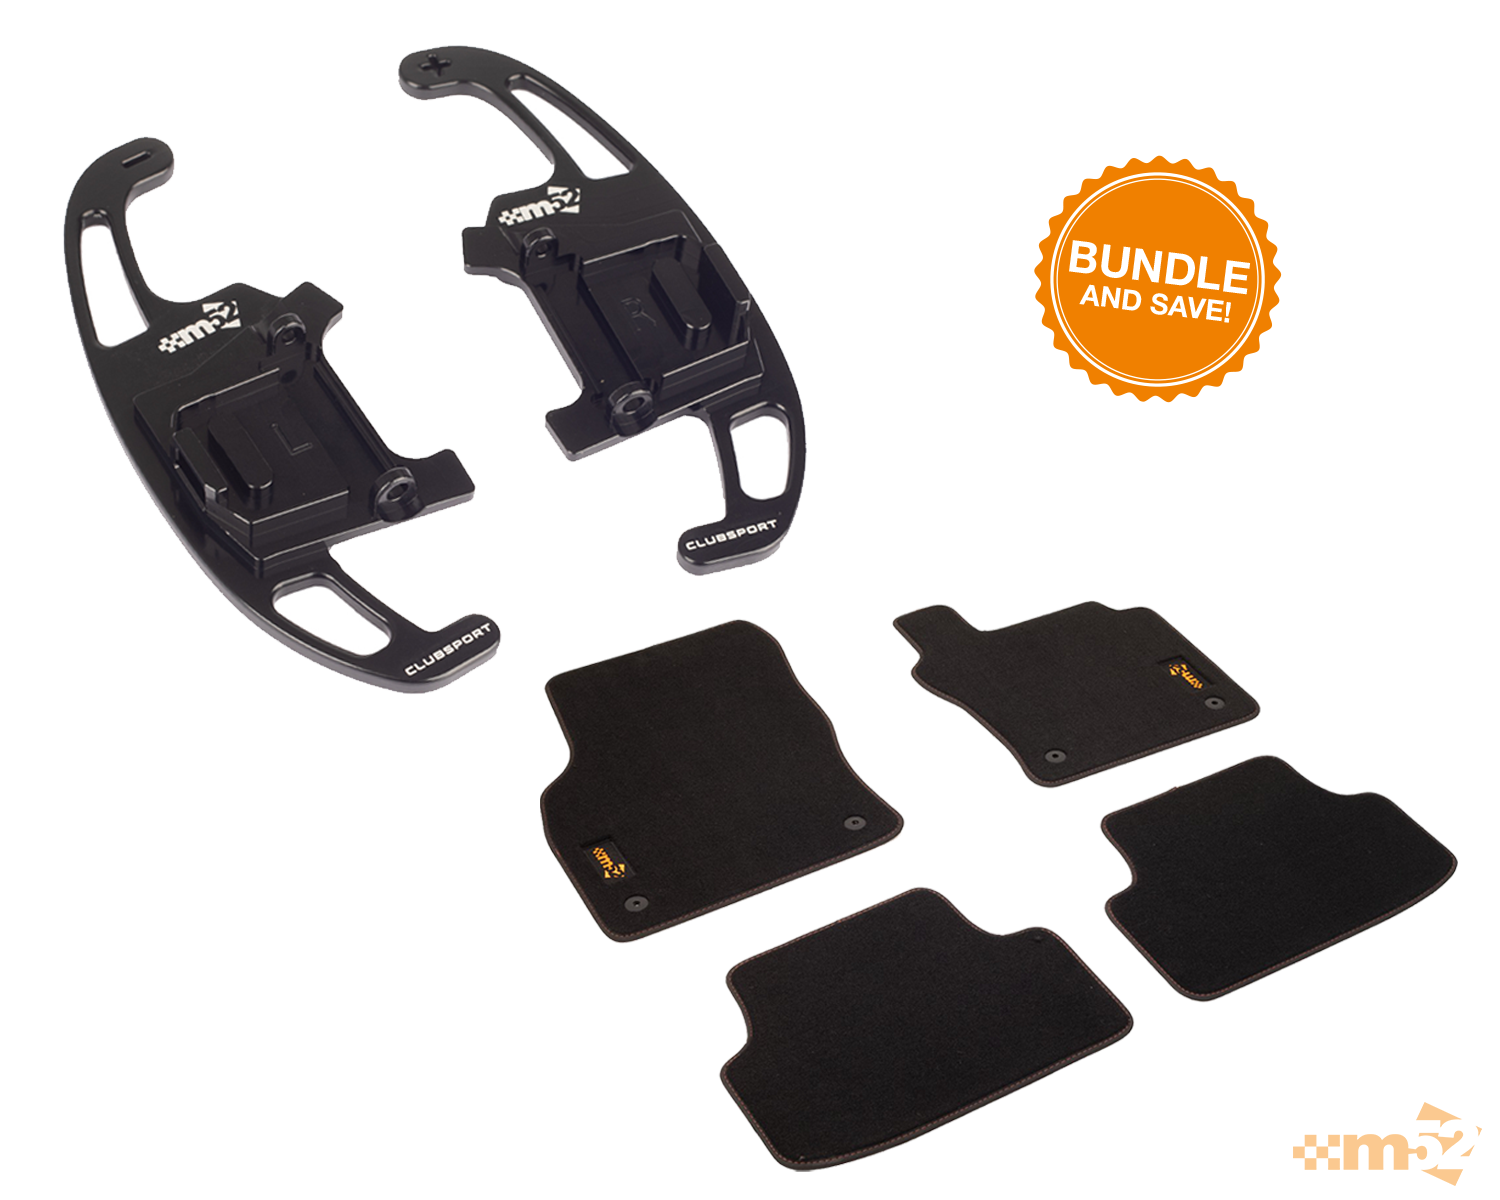 BUNDLE DEAL - Clubsport DSG Paddles With FREE R-LUX MATS